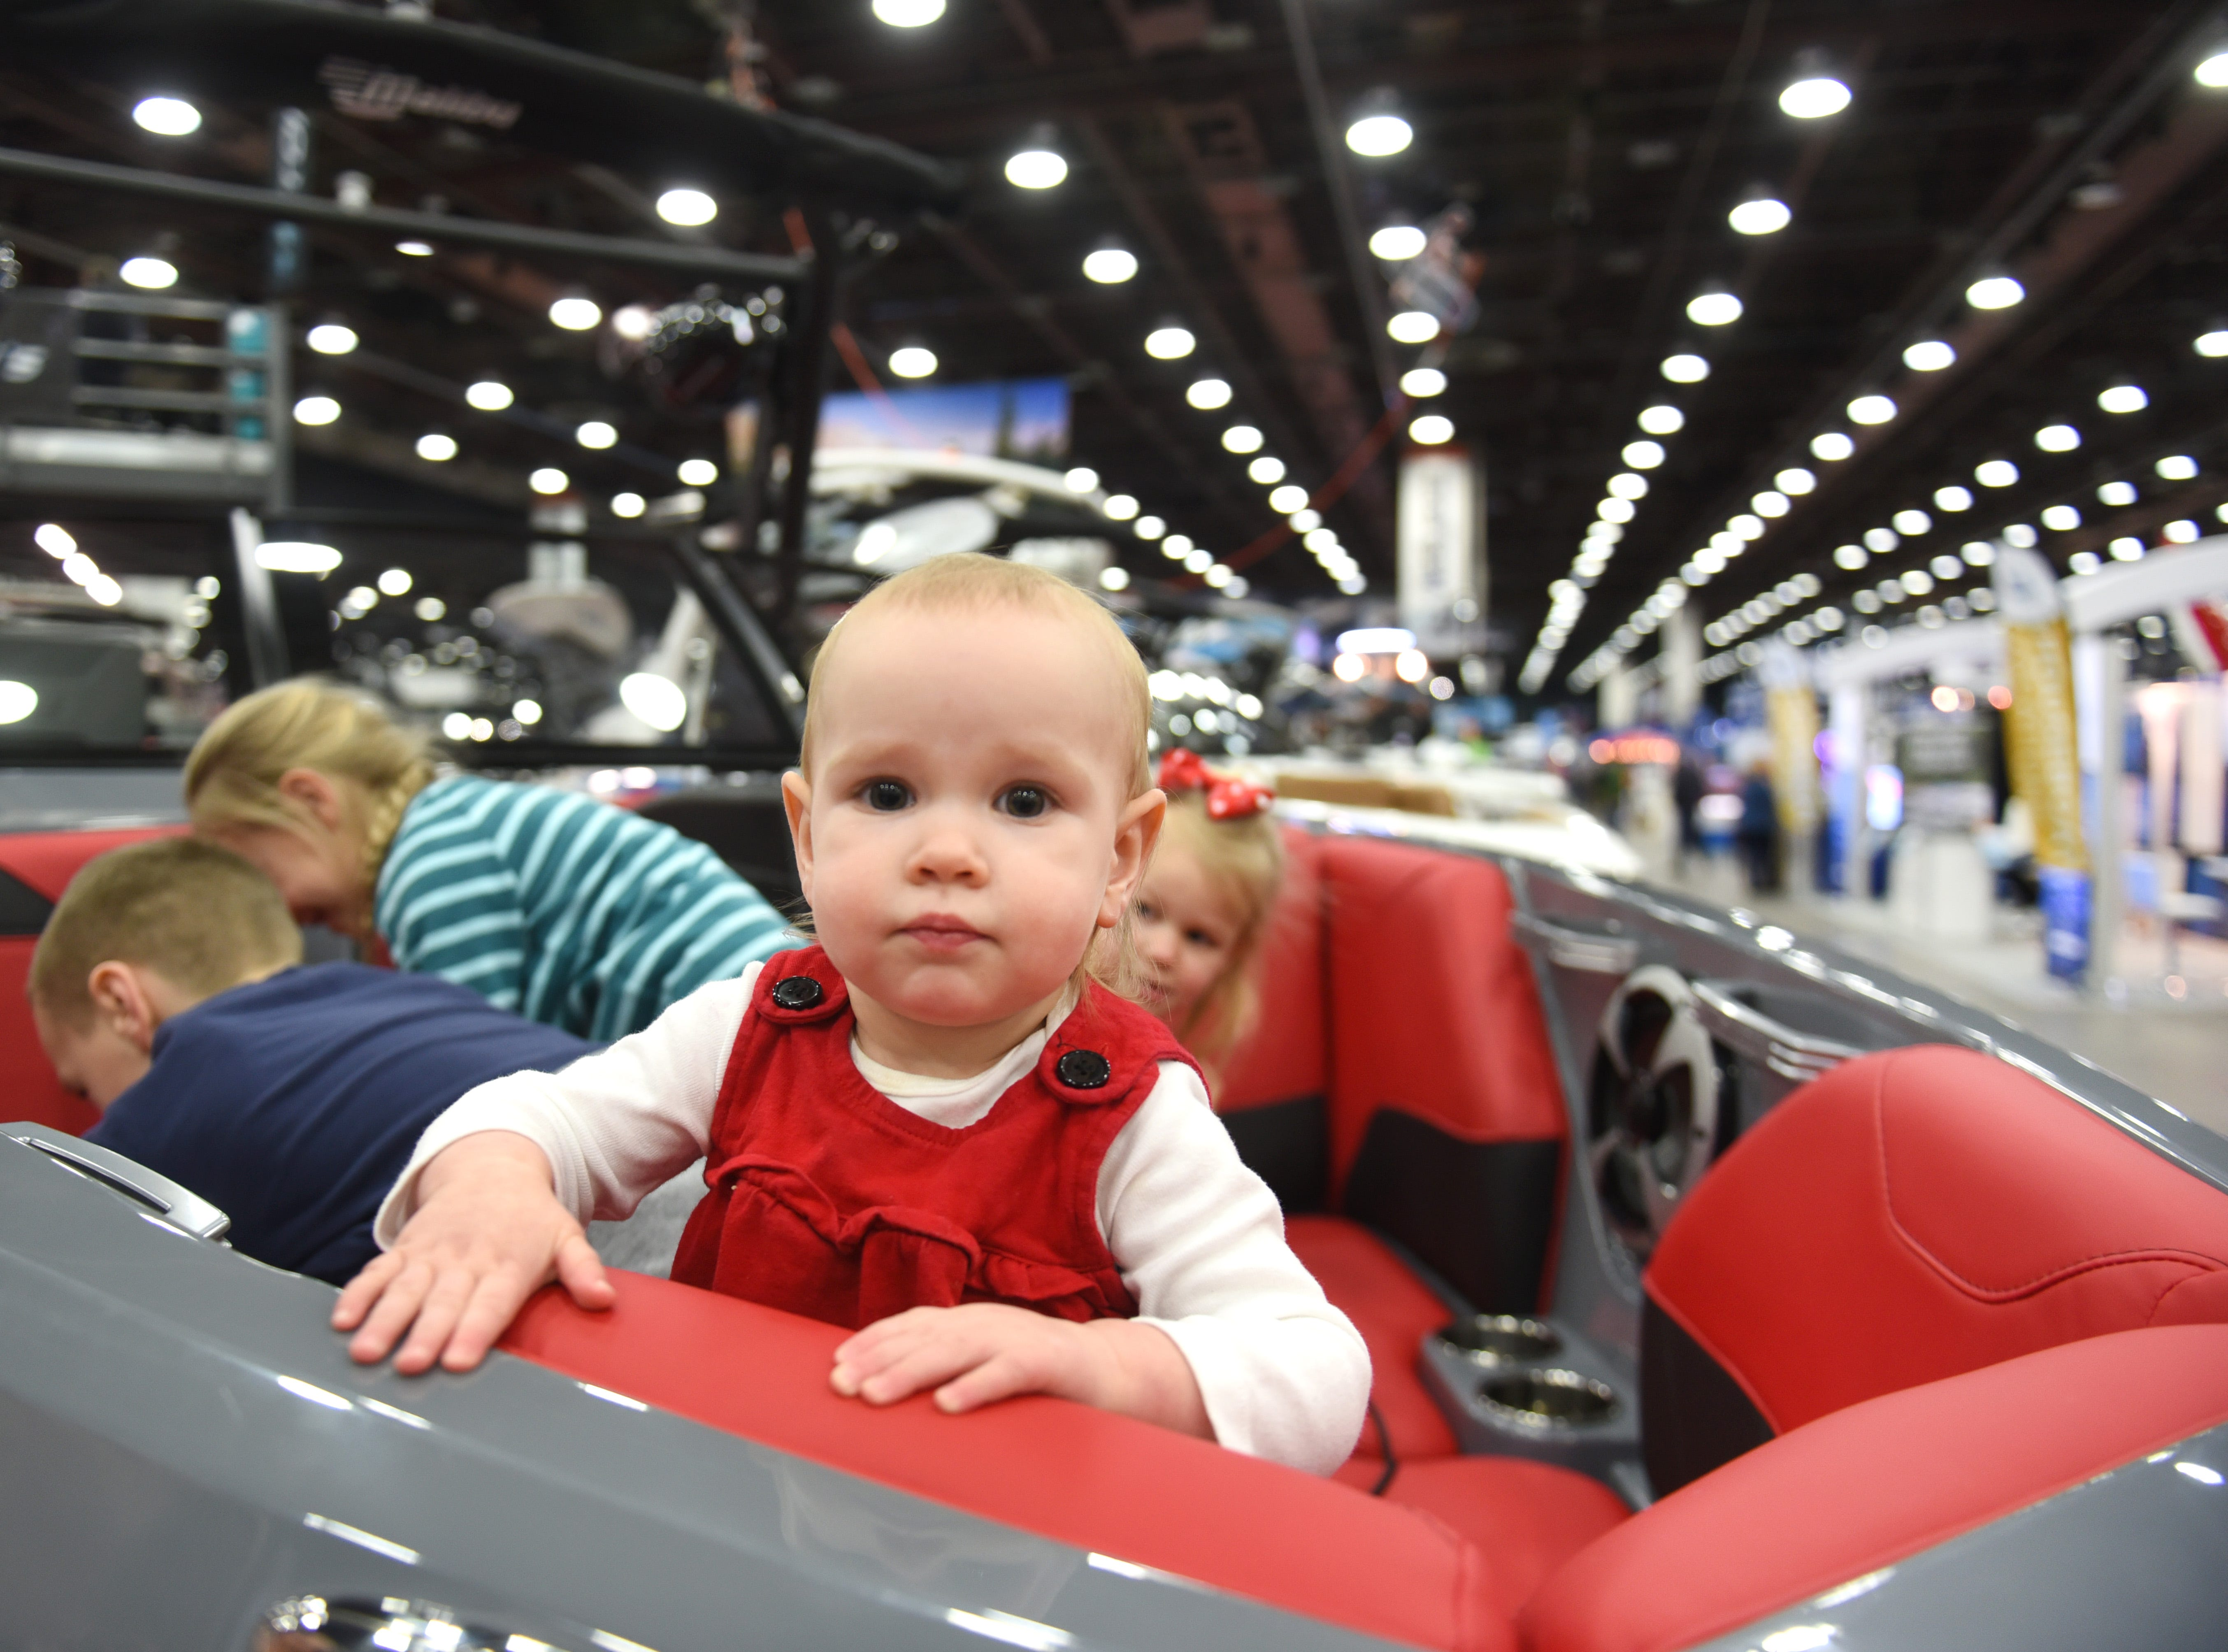 16-month-old Autumn Gehman, of Rochester, enjoys  the comfort of a 2019 Malibu 23 LSV from Tommy's of Detroit, Waterford, during the Detroit Boat Show at Cobo Center on Saturday, February 16, 2018.